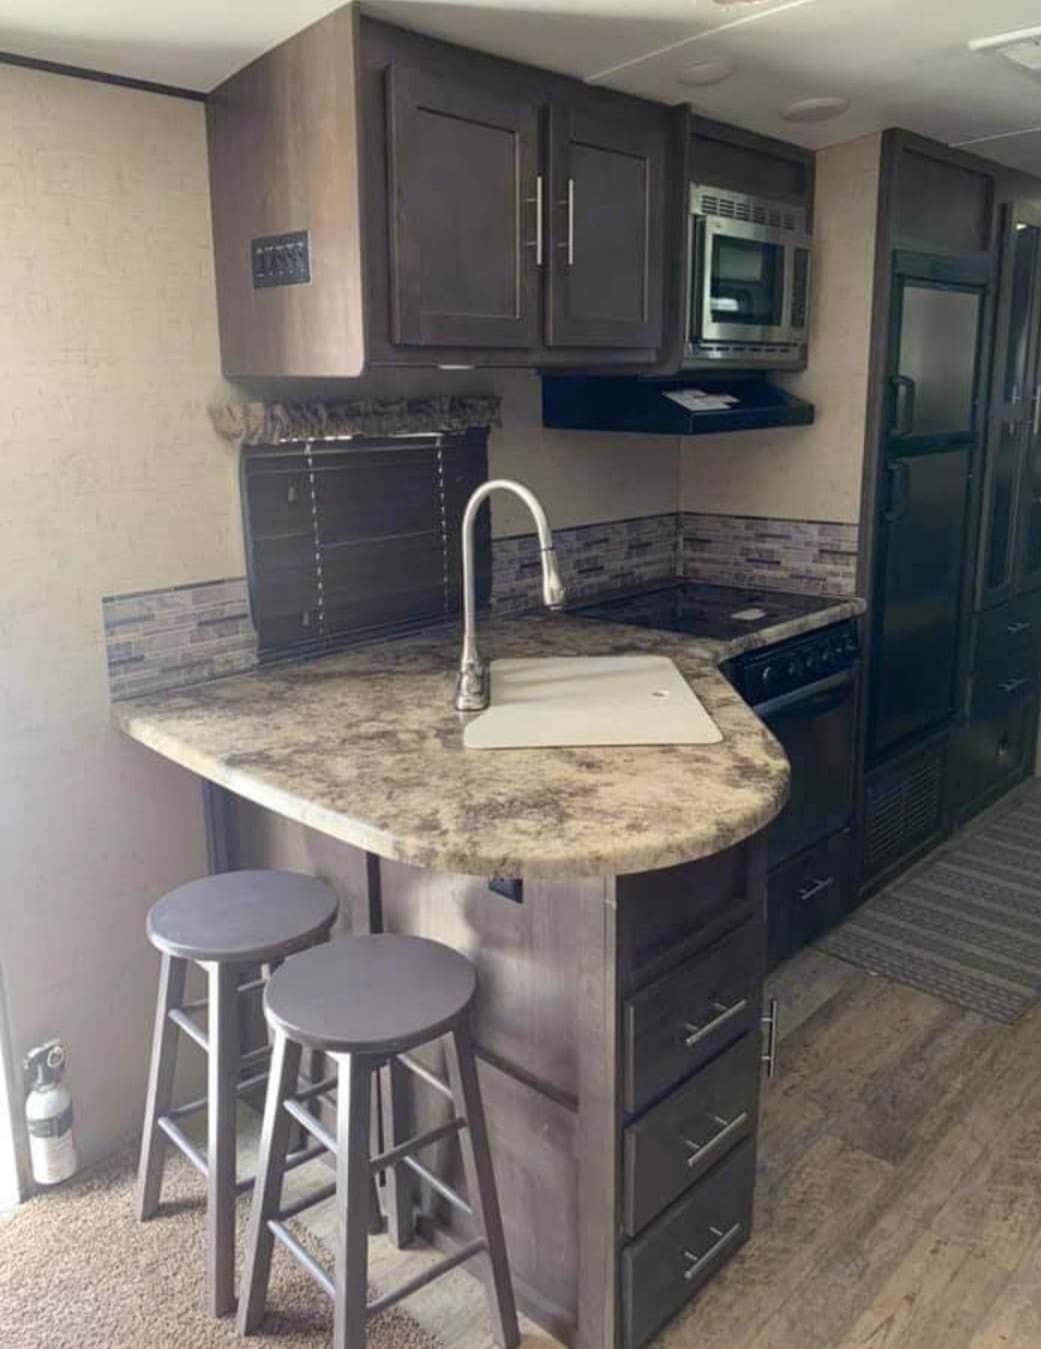 extra space for dining at the bar. Forest River Surveyor 2016